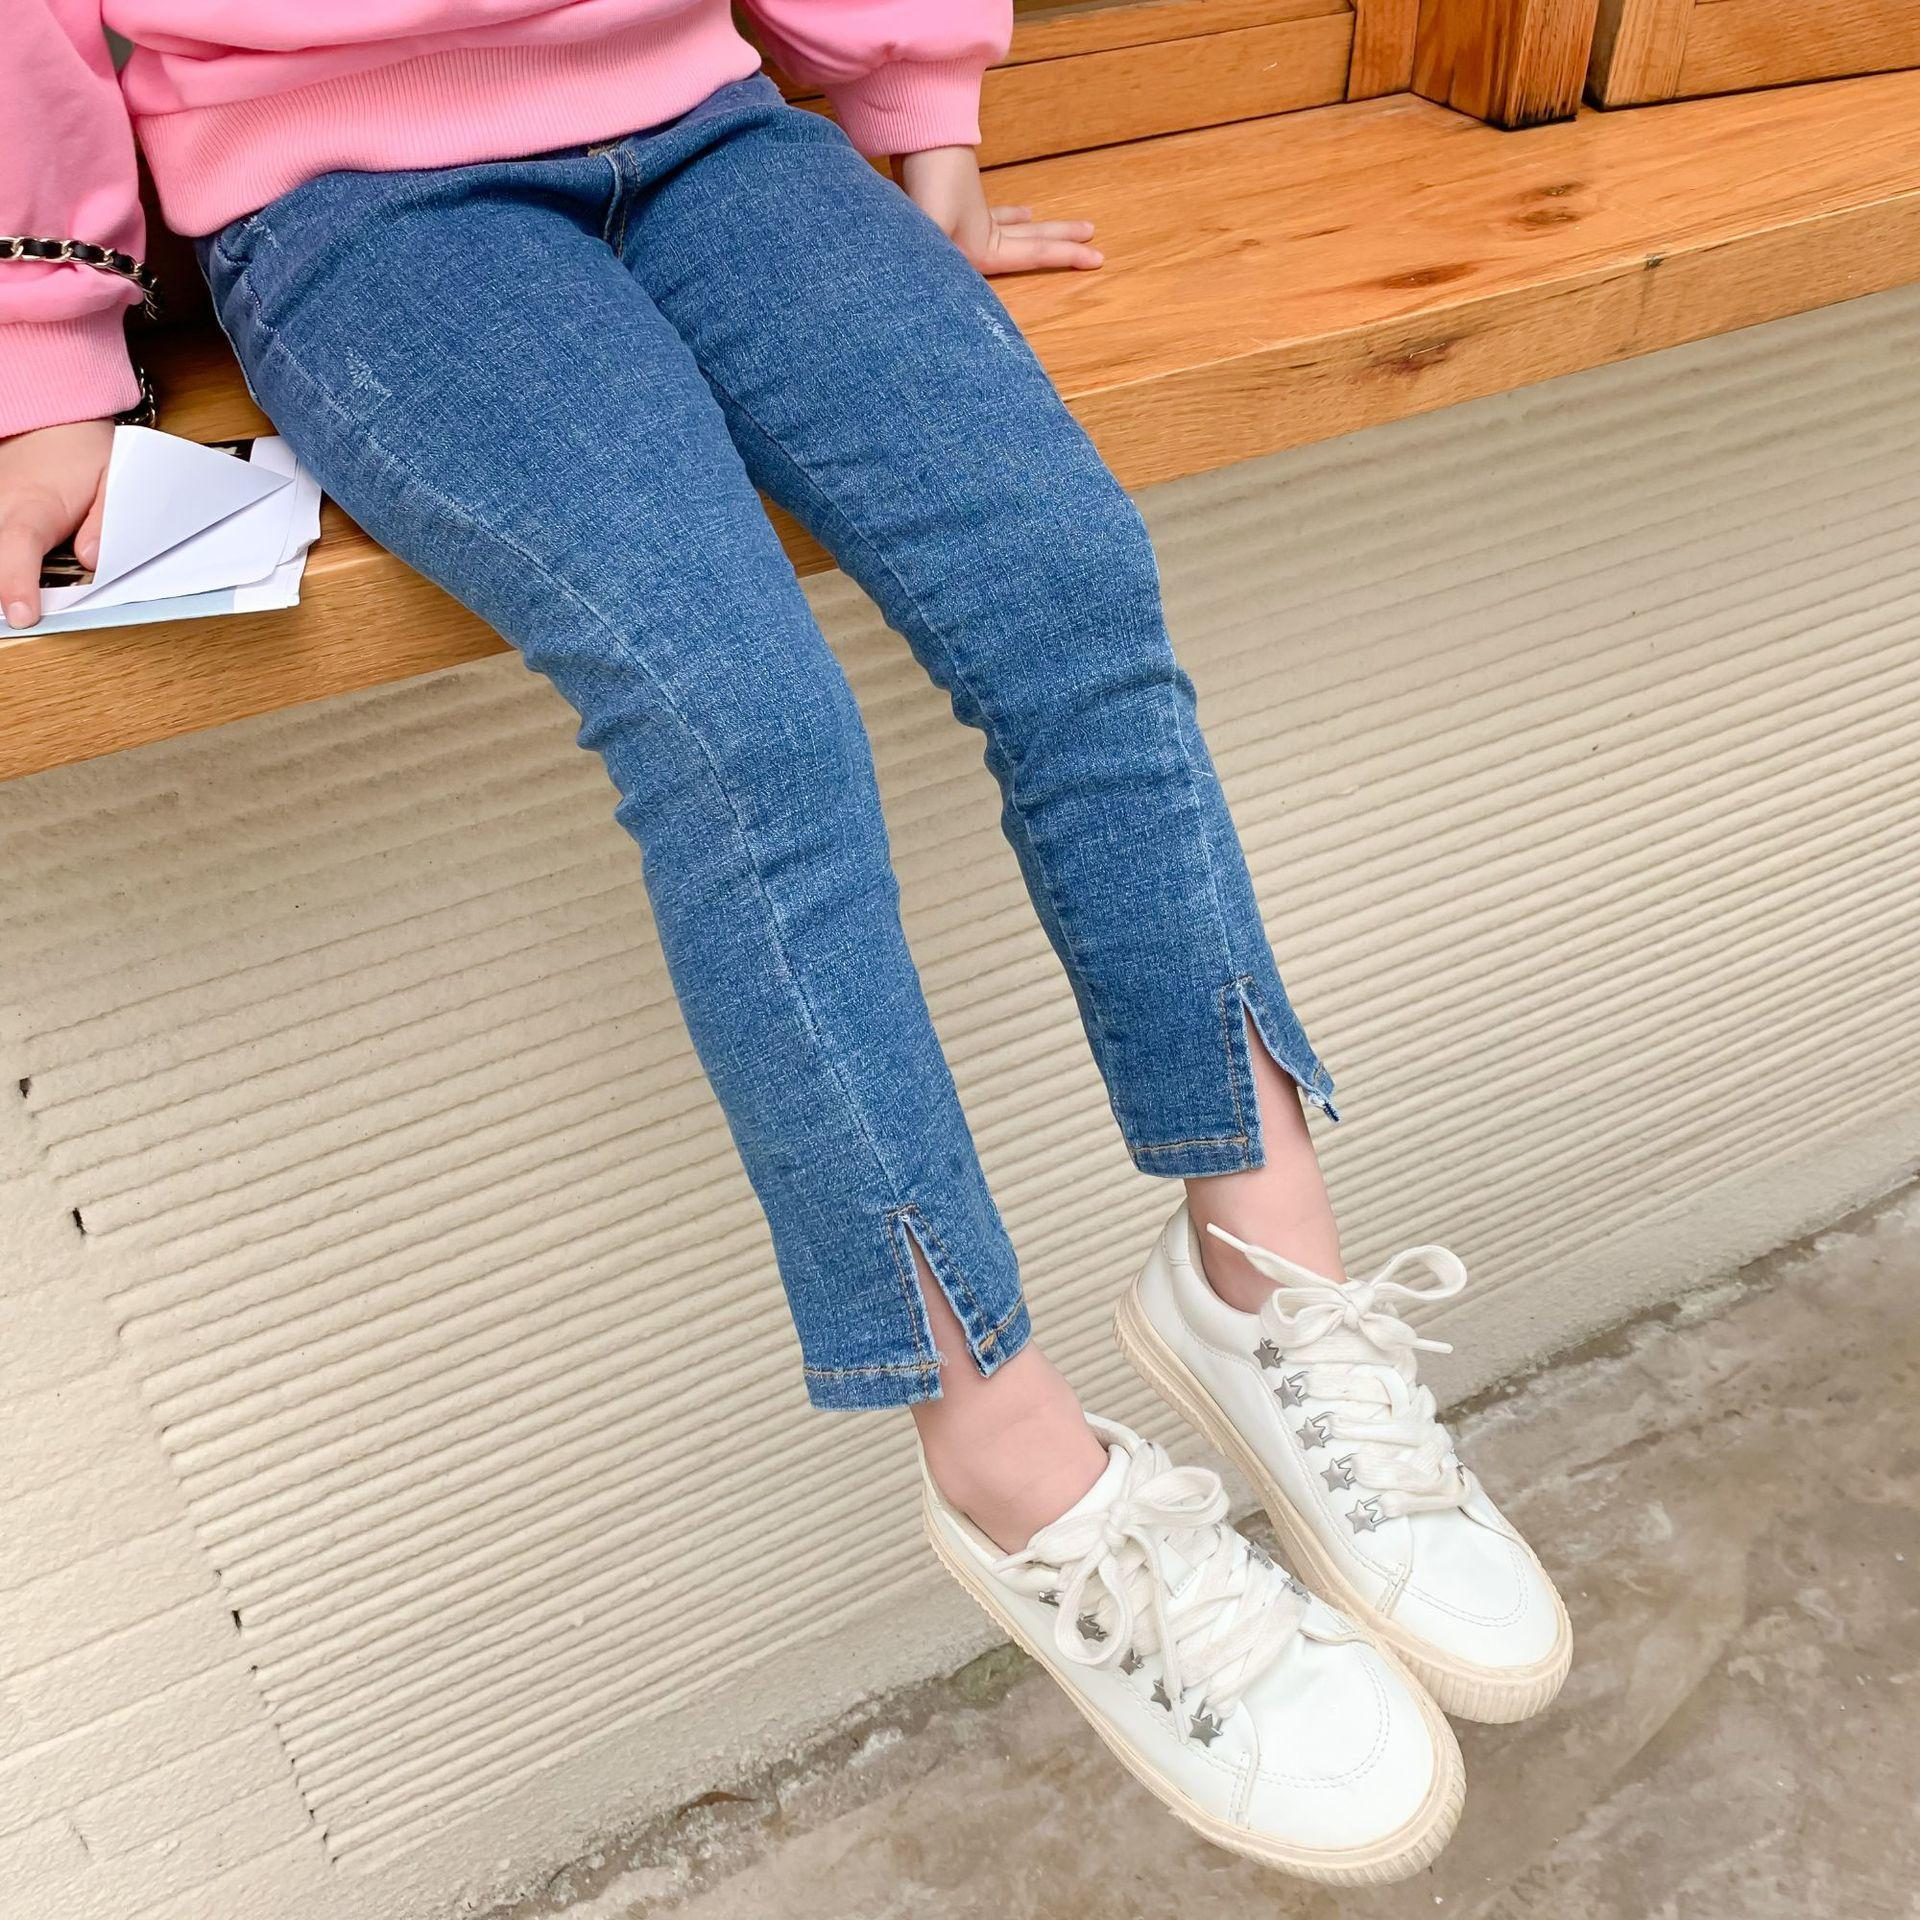 Autumn 2-7 years girls fashion Split skinny jeans kids all-match casual slim denim pants F1208